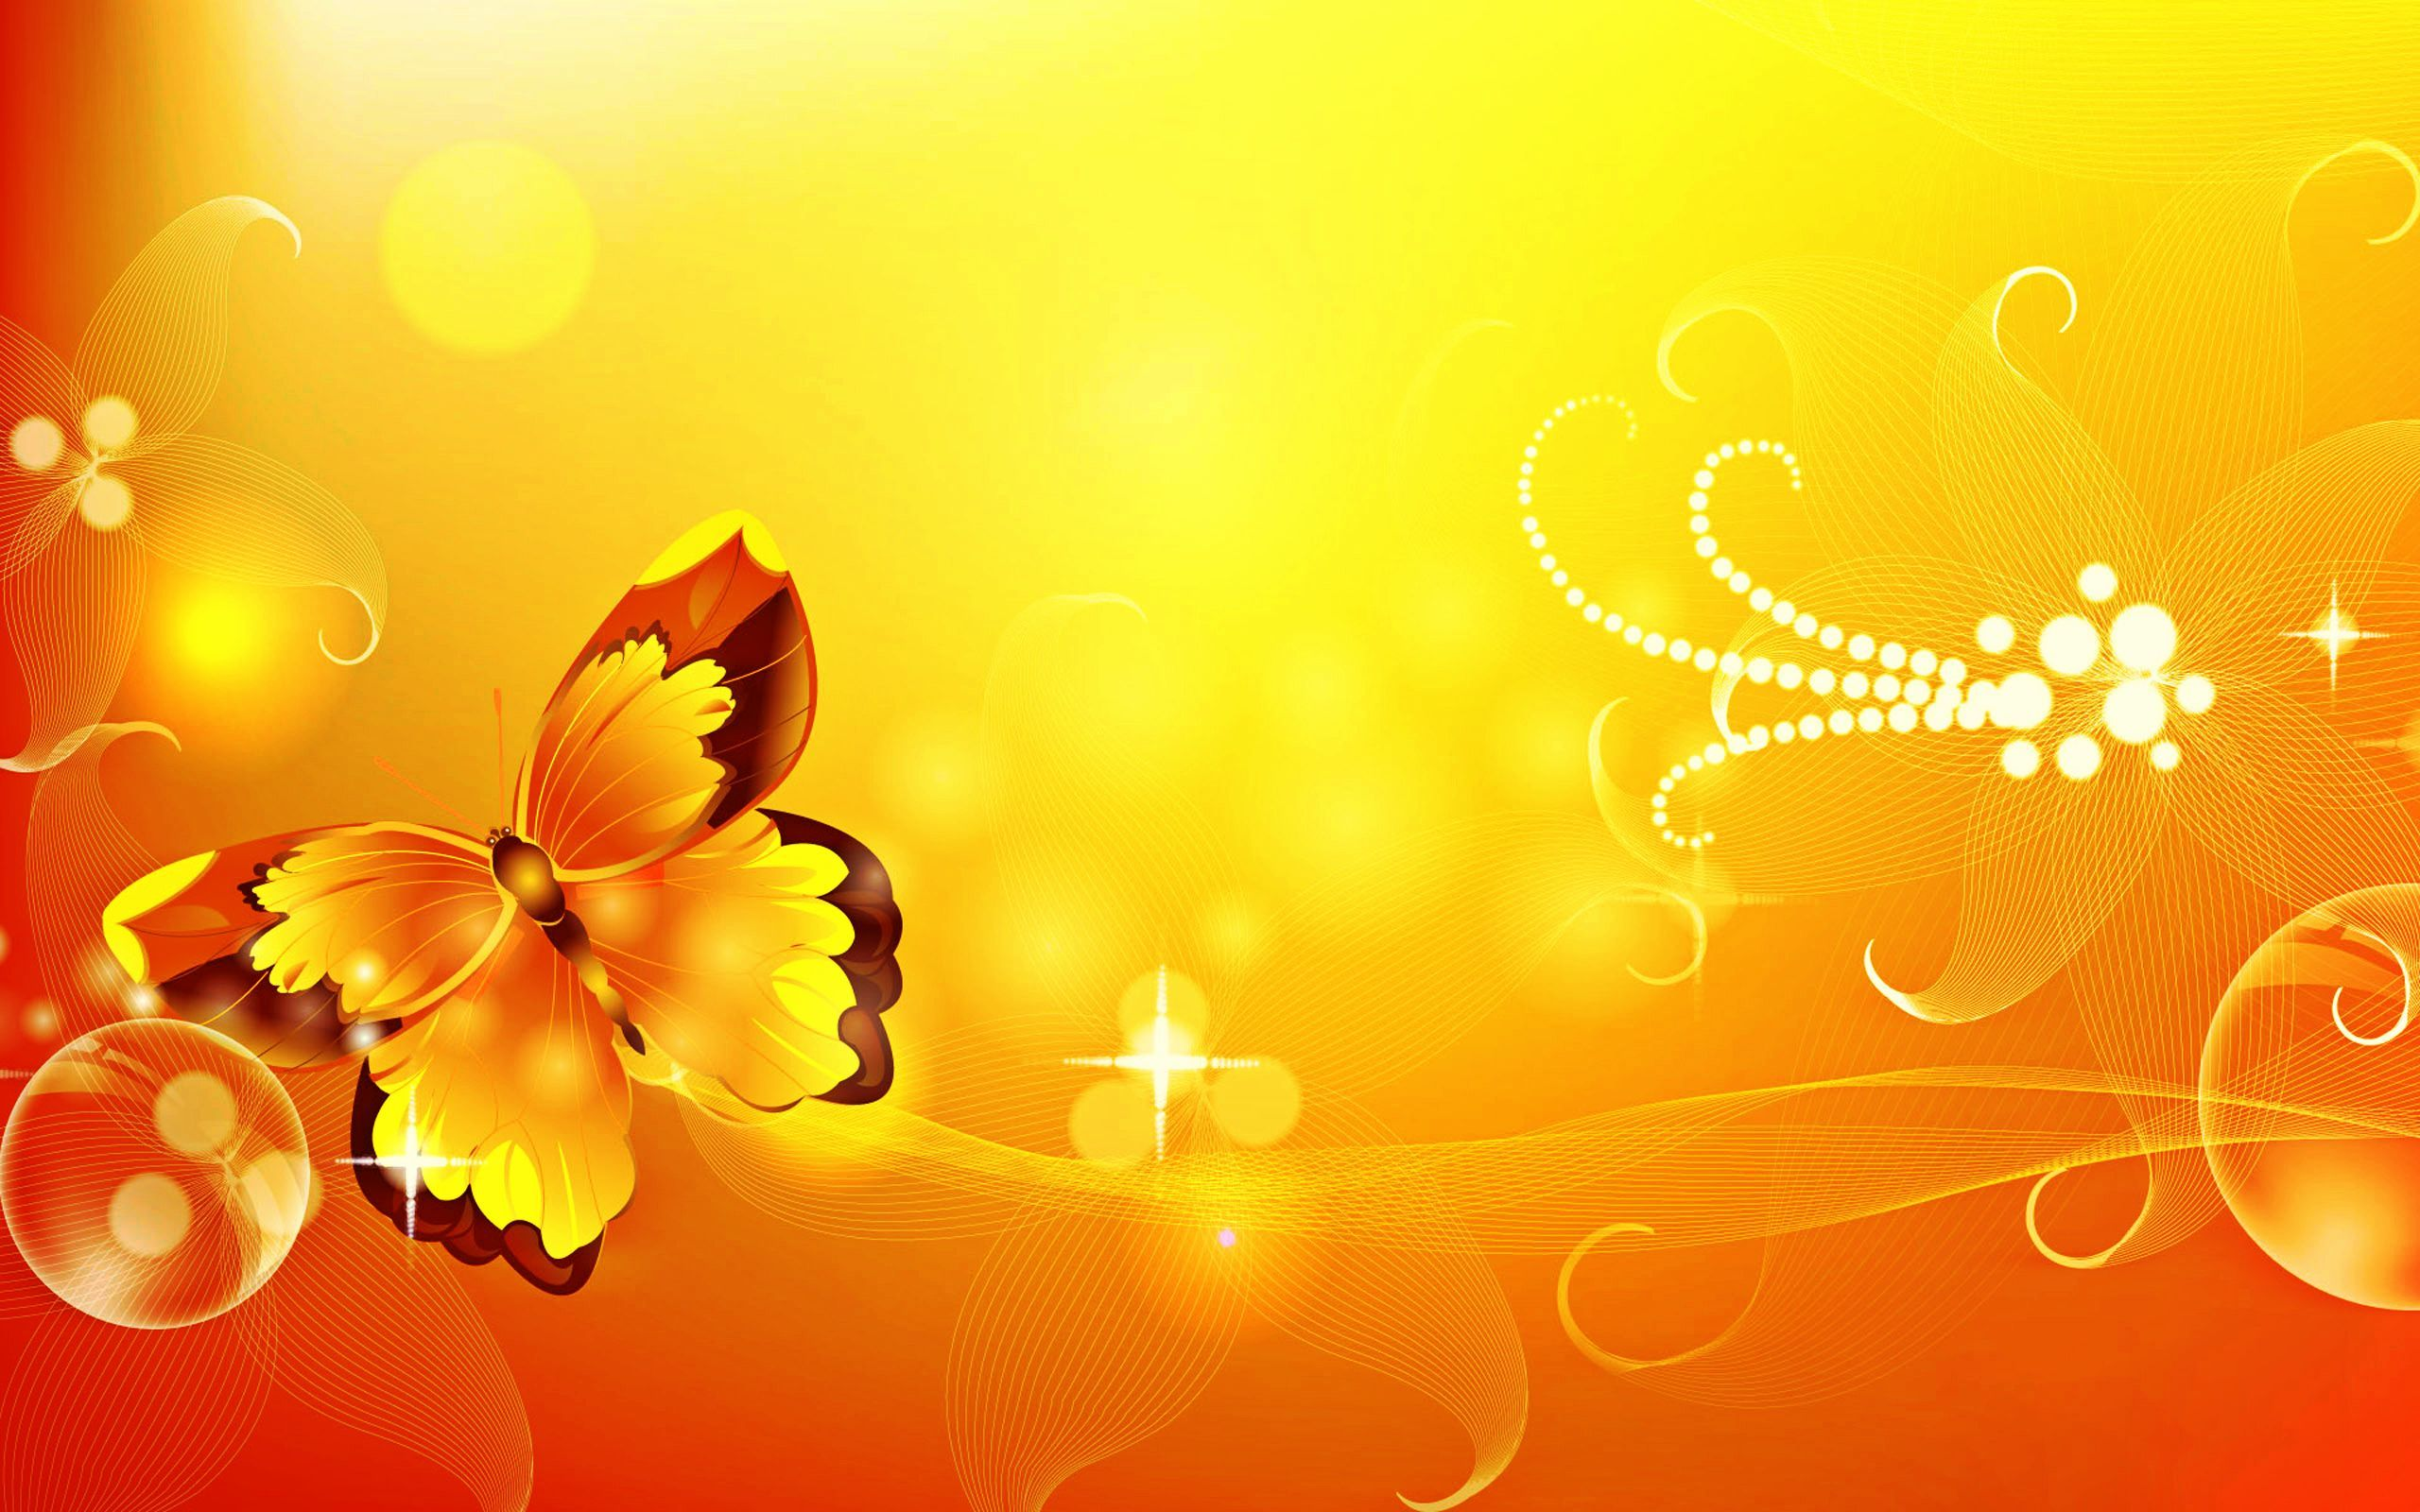 HD Butterfly, Flowers, Graphic Design, Yellow Background